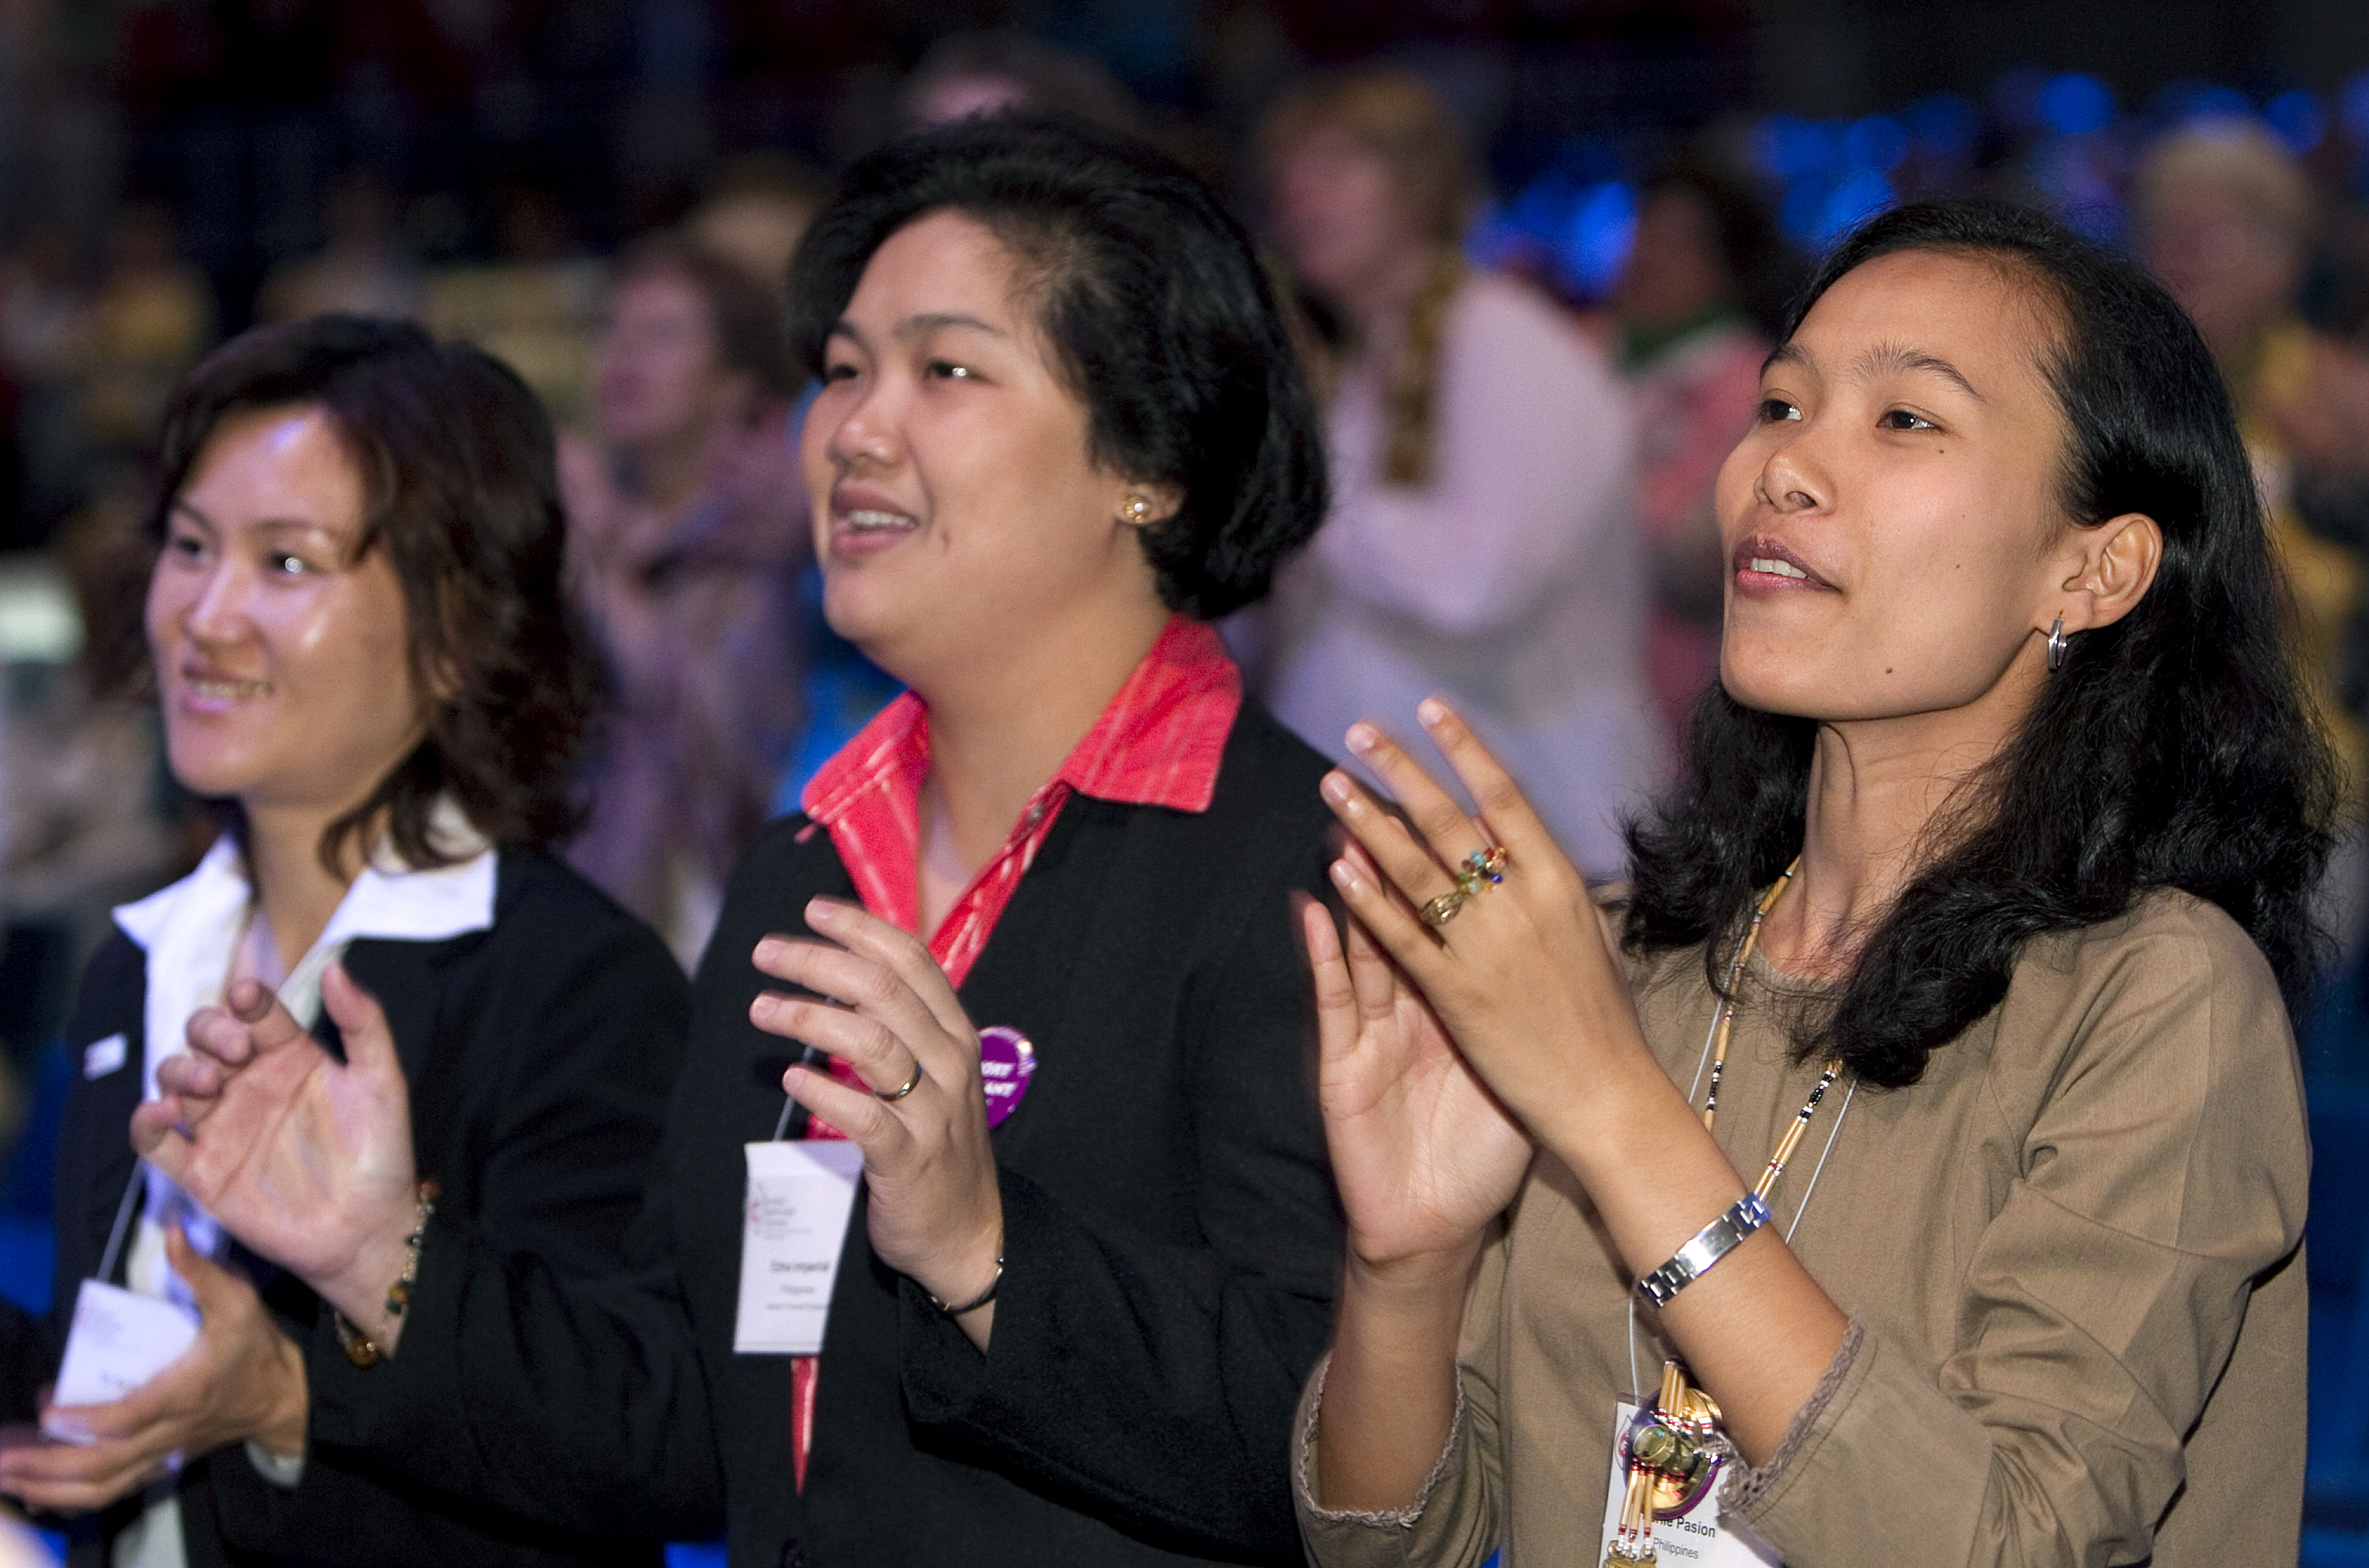 Women participate at UMW Assembly 2010. Courtesy UMW.